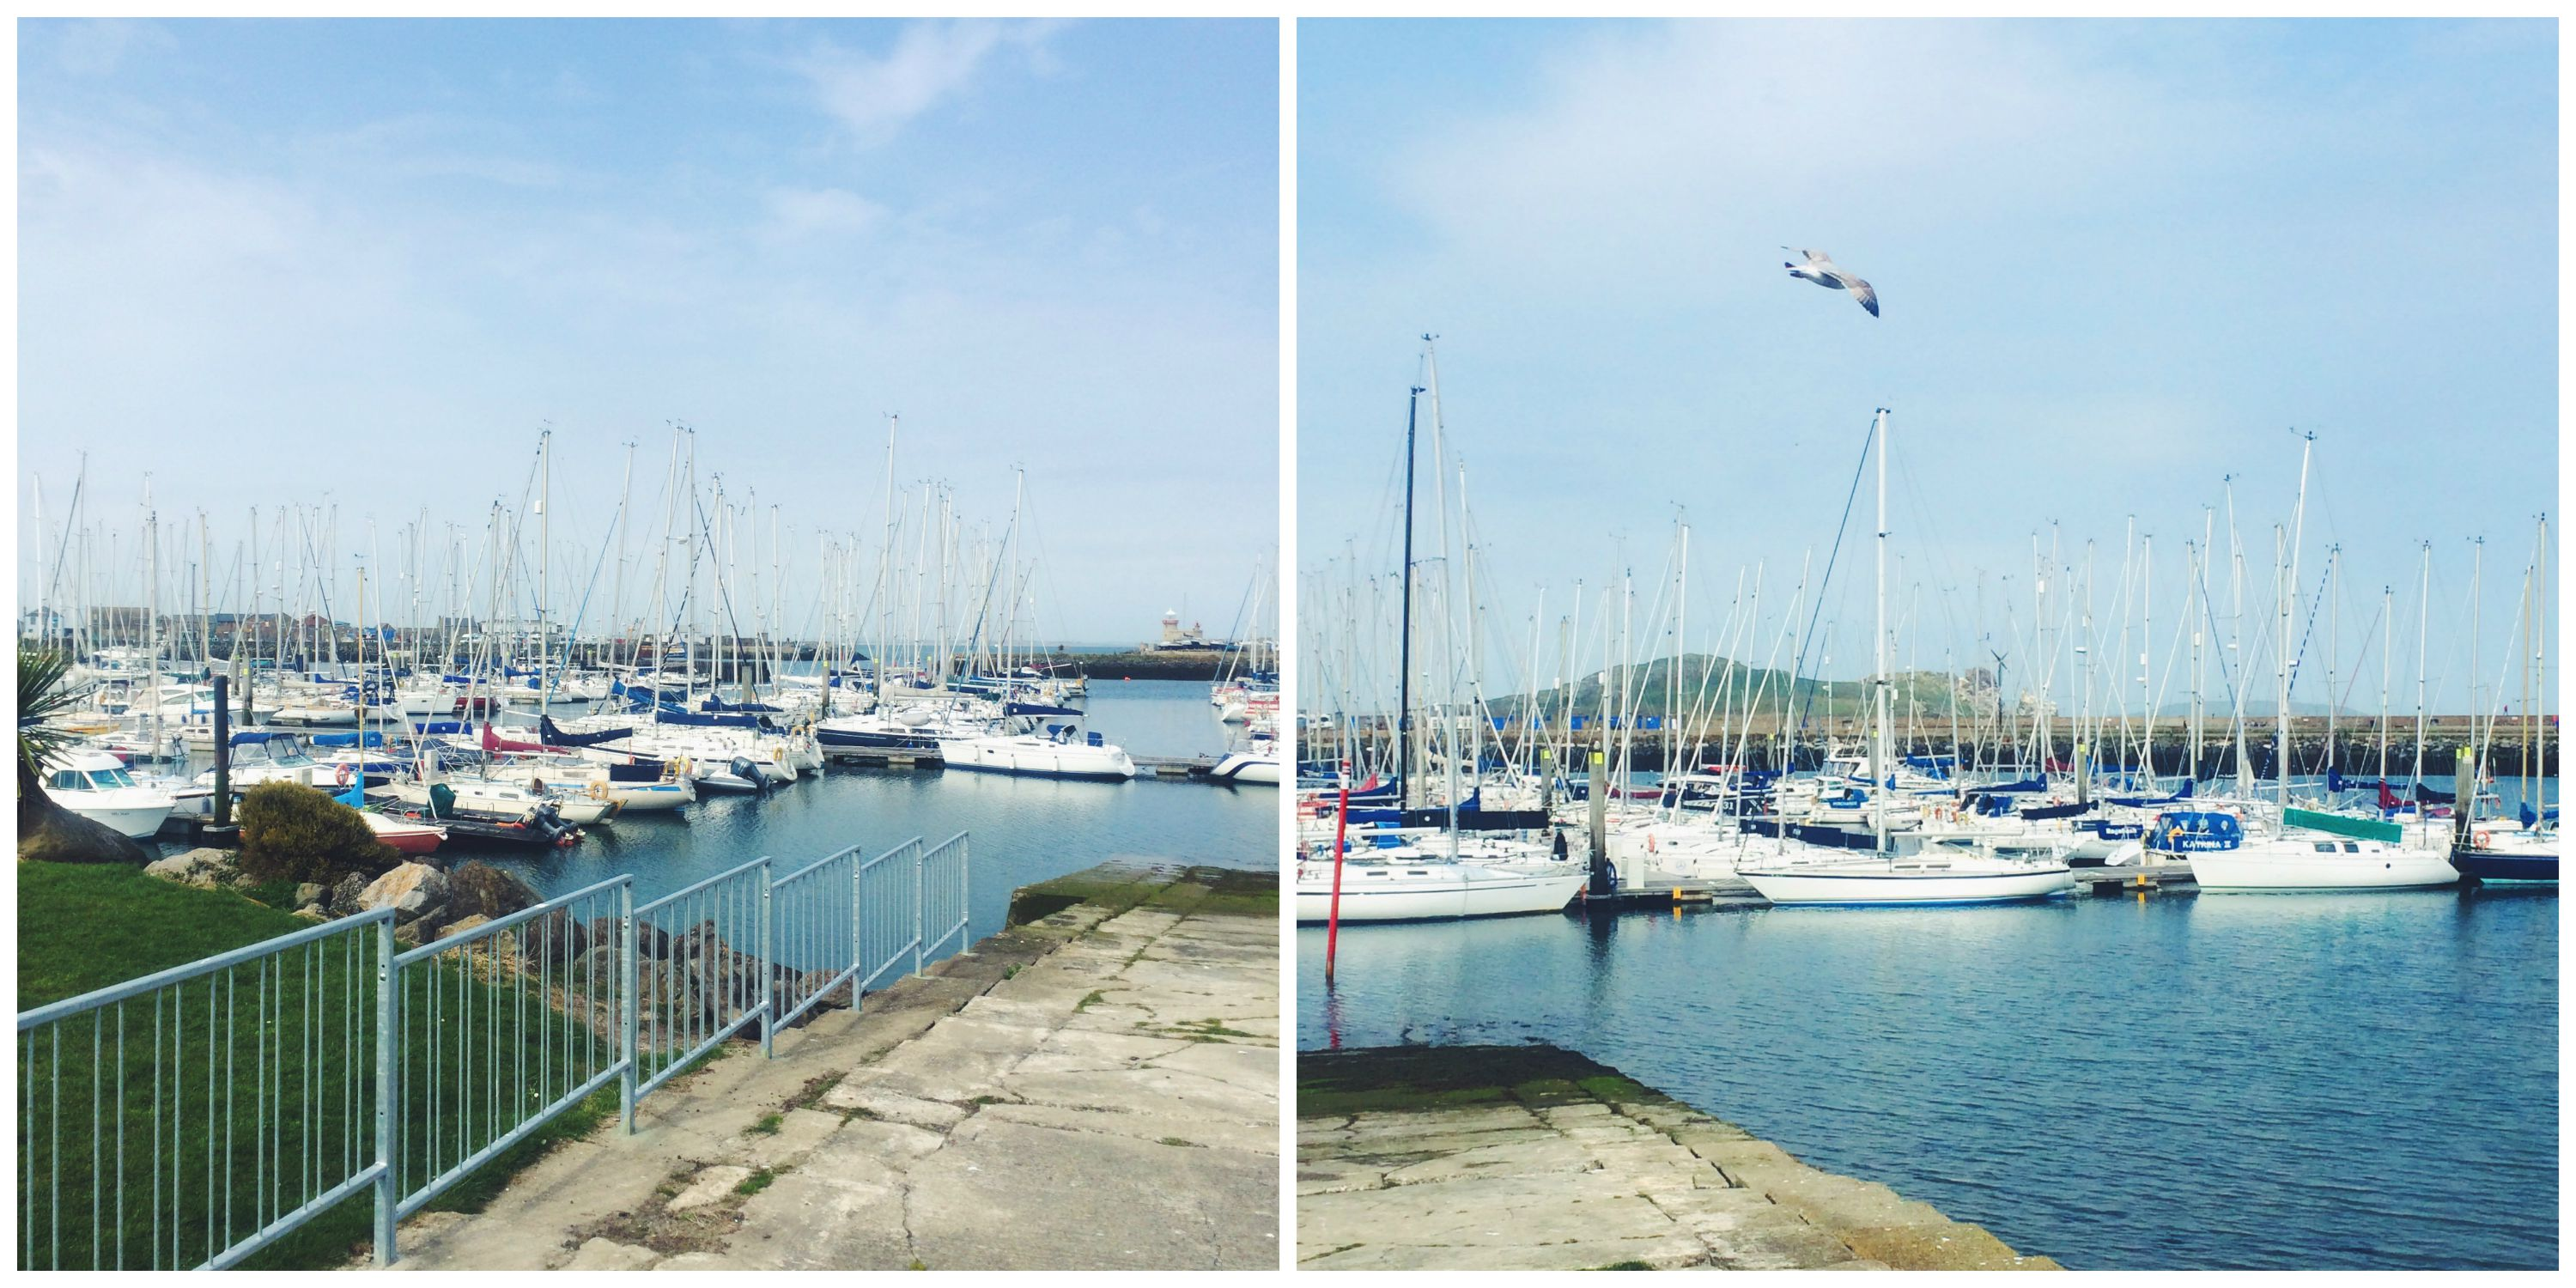 The Harbor in Howth